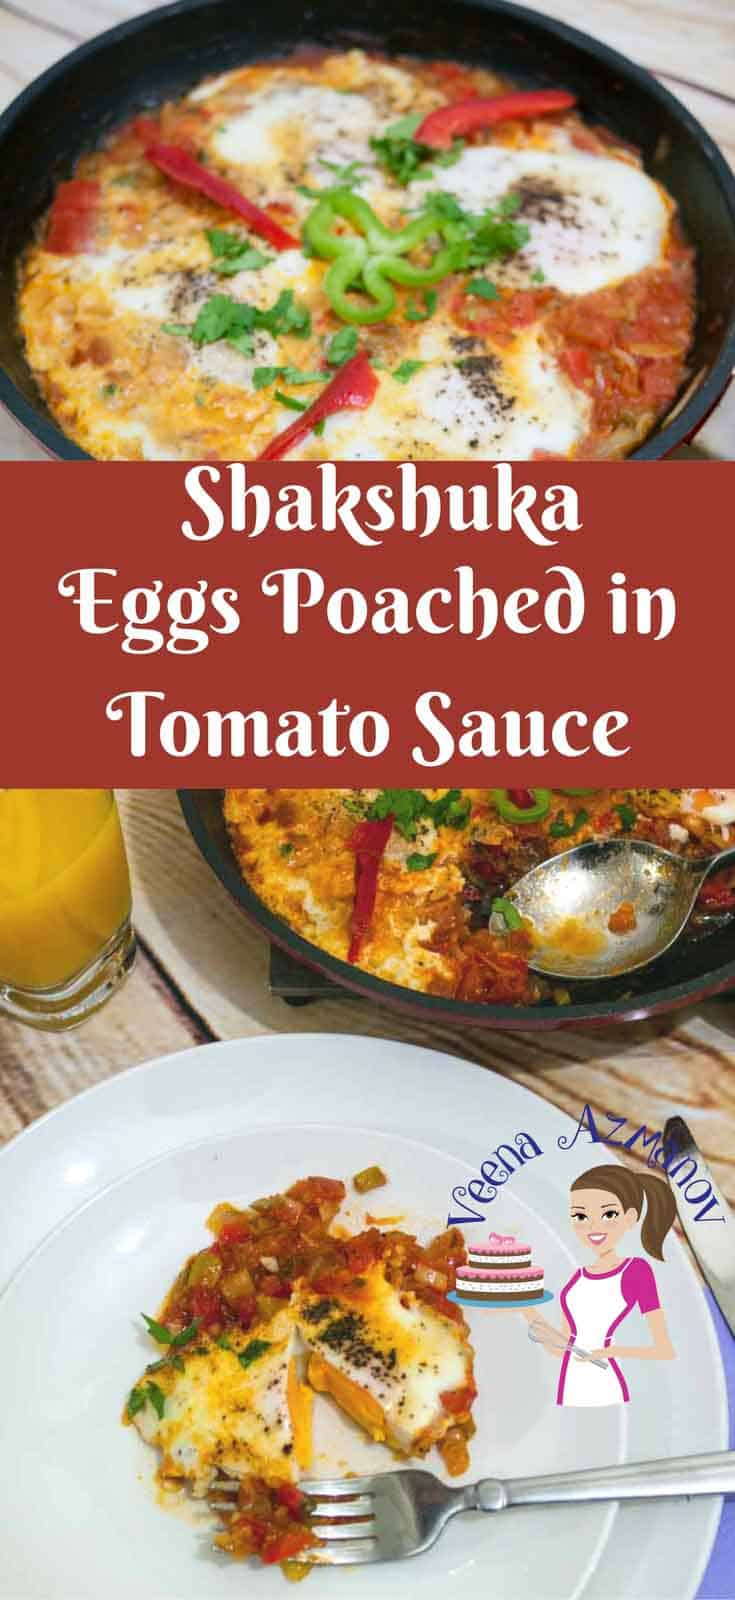 A Pinterest optimized image for our Classic Shakshuka which is egg poached in tomato sauce an Israeli or Middle Easter breakfast recipe